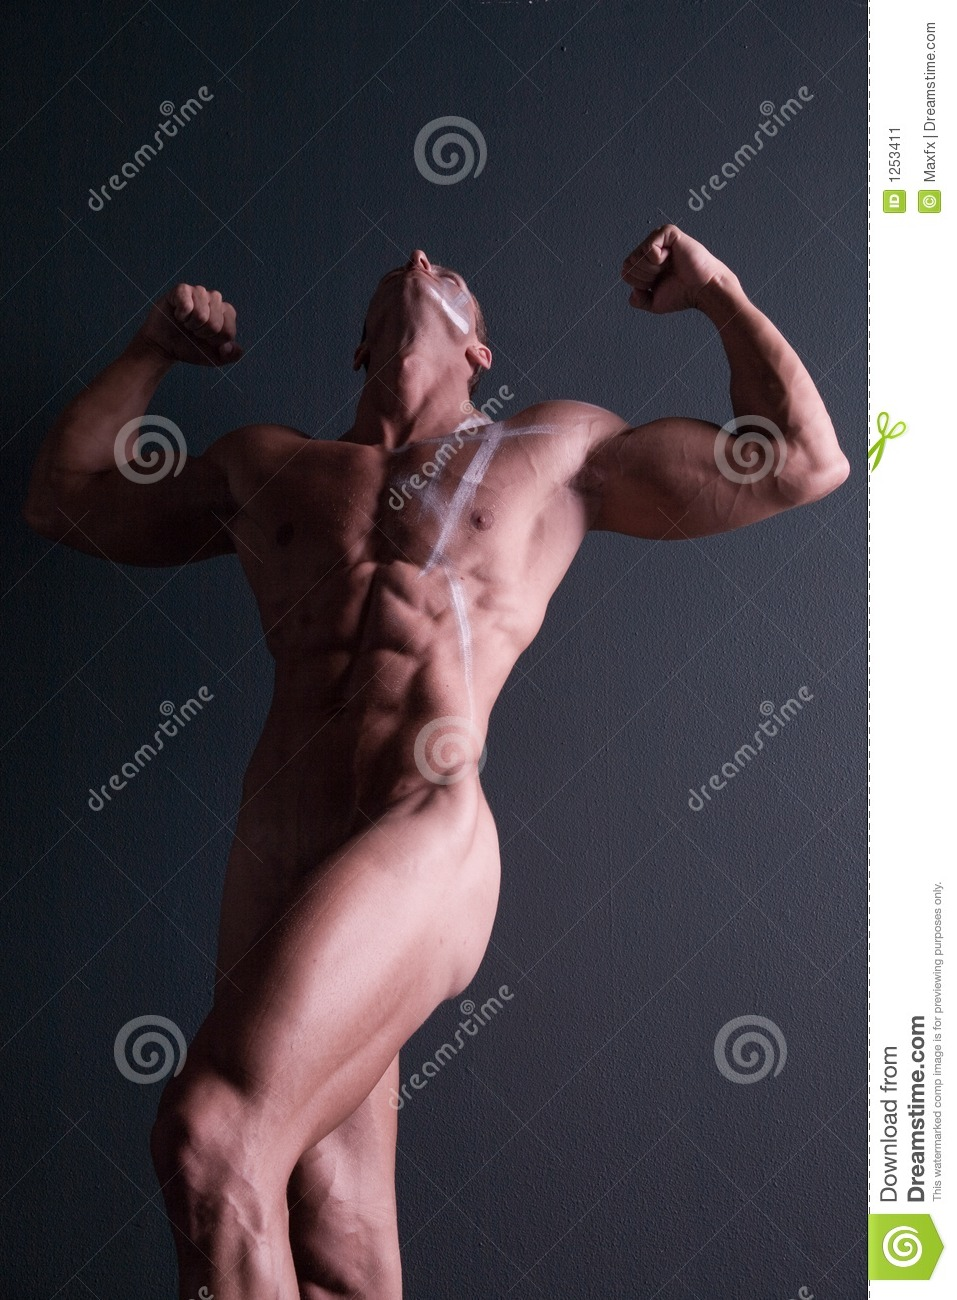 Body Builders Nude Photos muscular nude male body builder stock image - image of